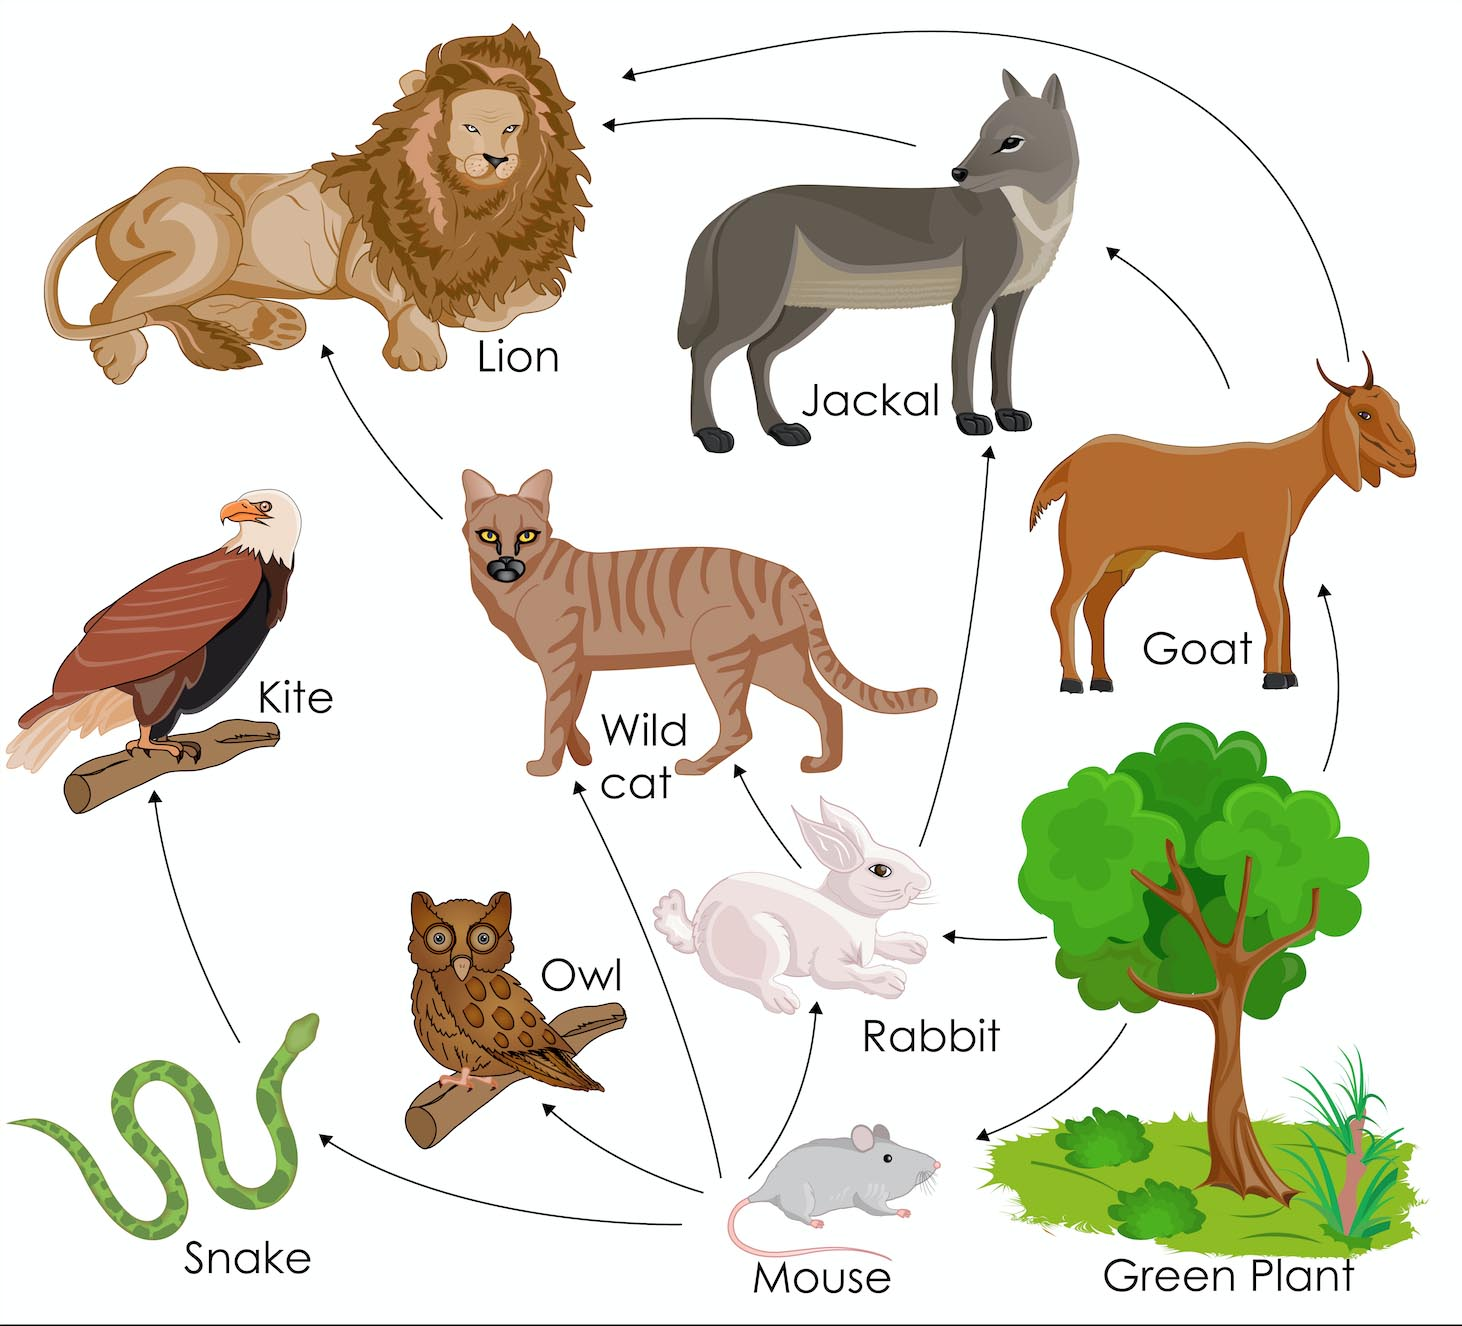 Food Webs in an Ecosystem Science Games | Legends of Learning